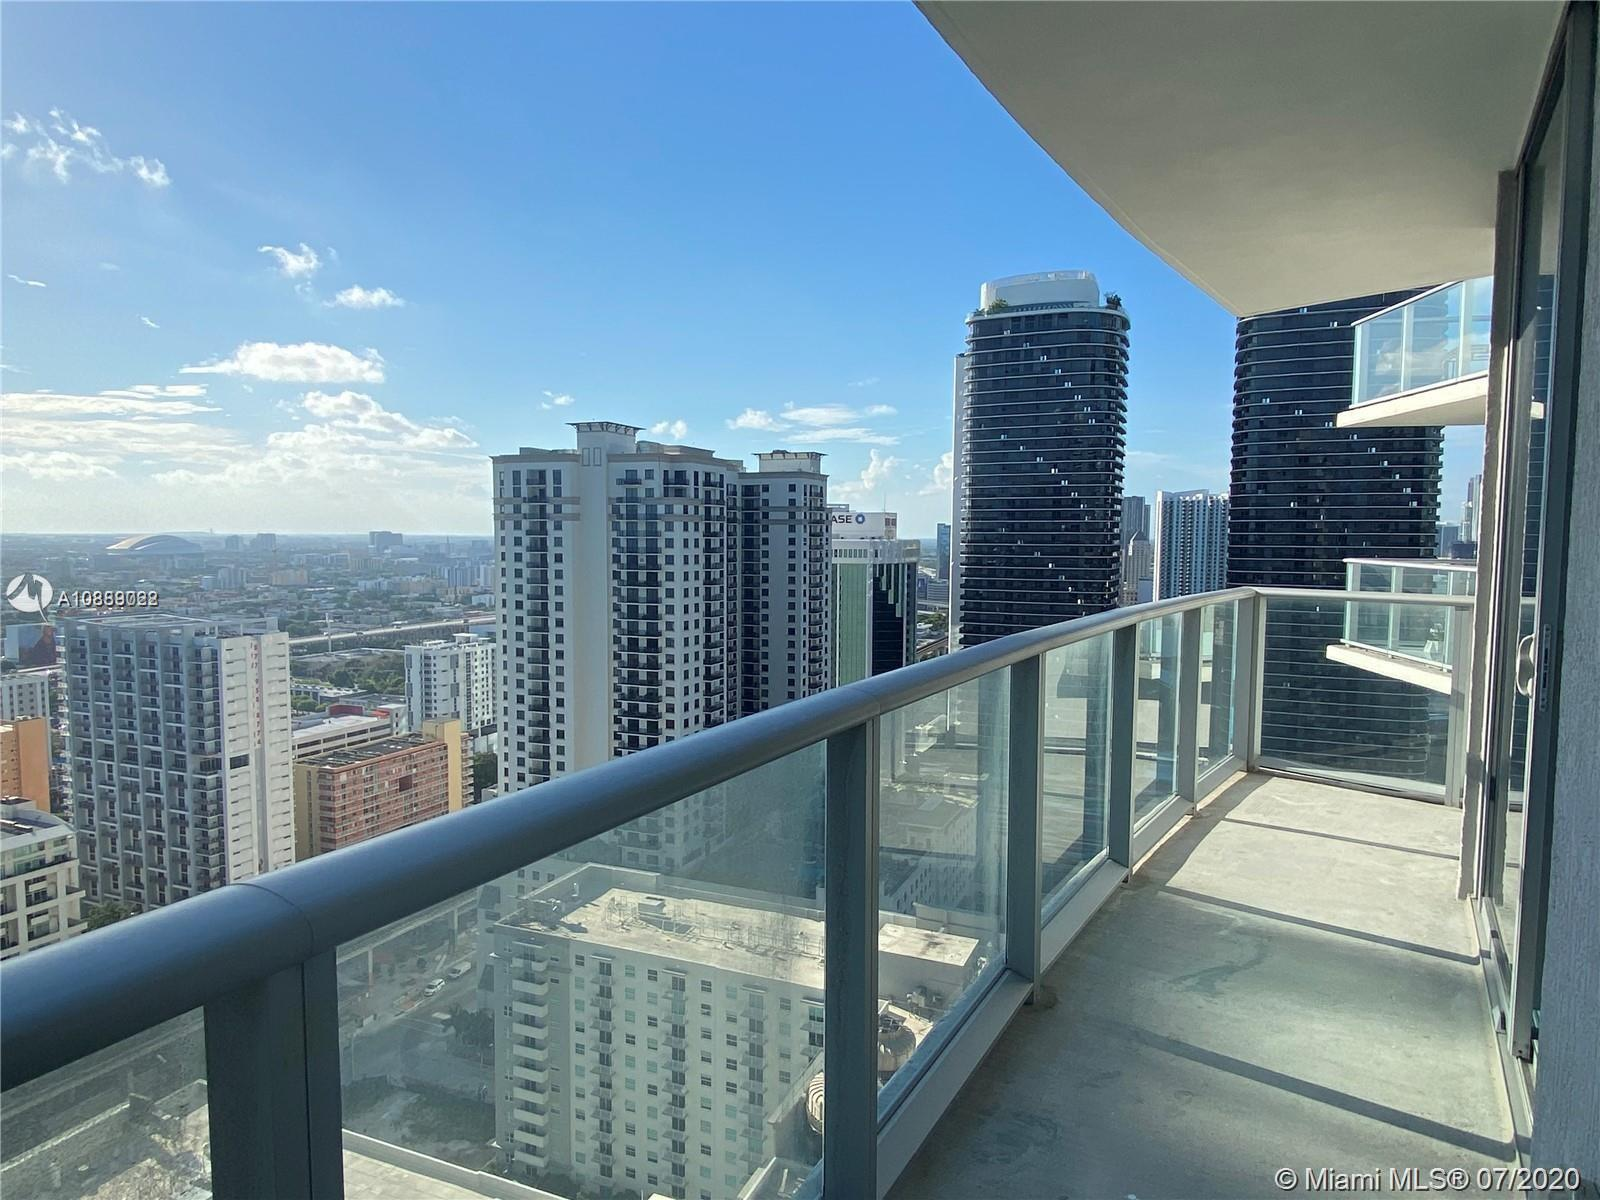 Great Unit in brand new building, enjoy the wonderful Brickell area, walking distance to all the entertainment. Amazing large balcony!! Amenities included a roof top pool, fitness center, movie theater.